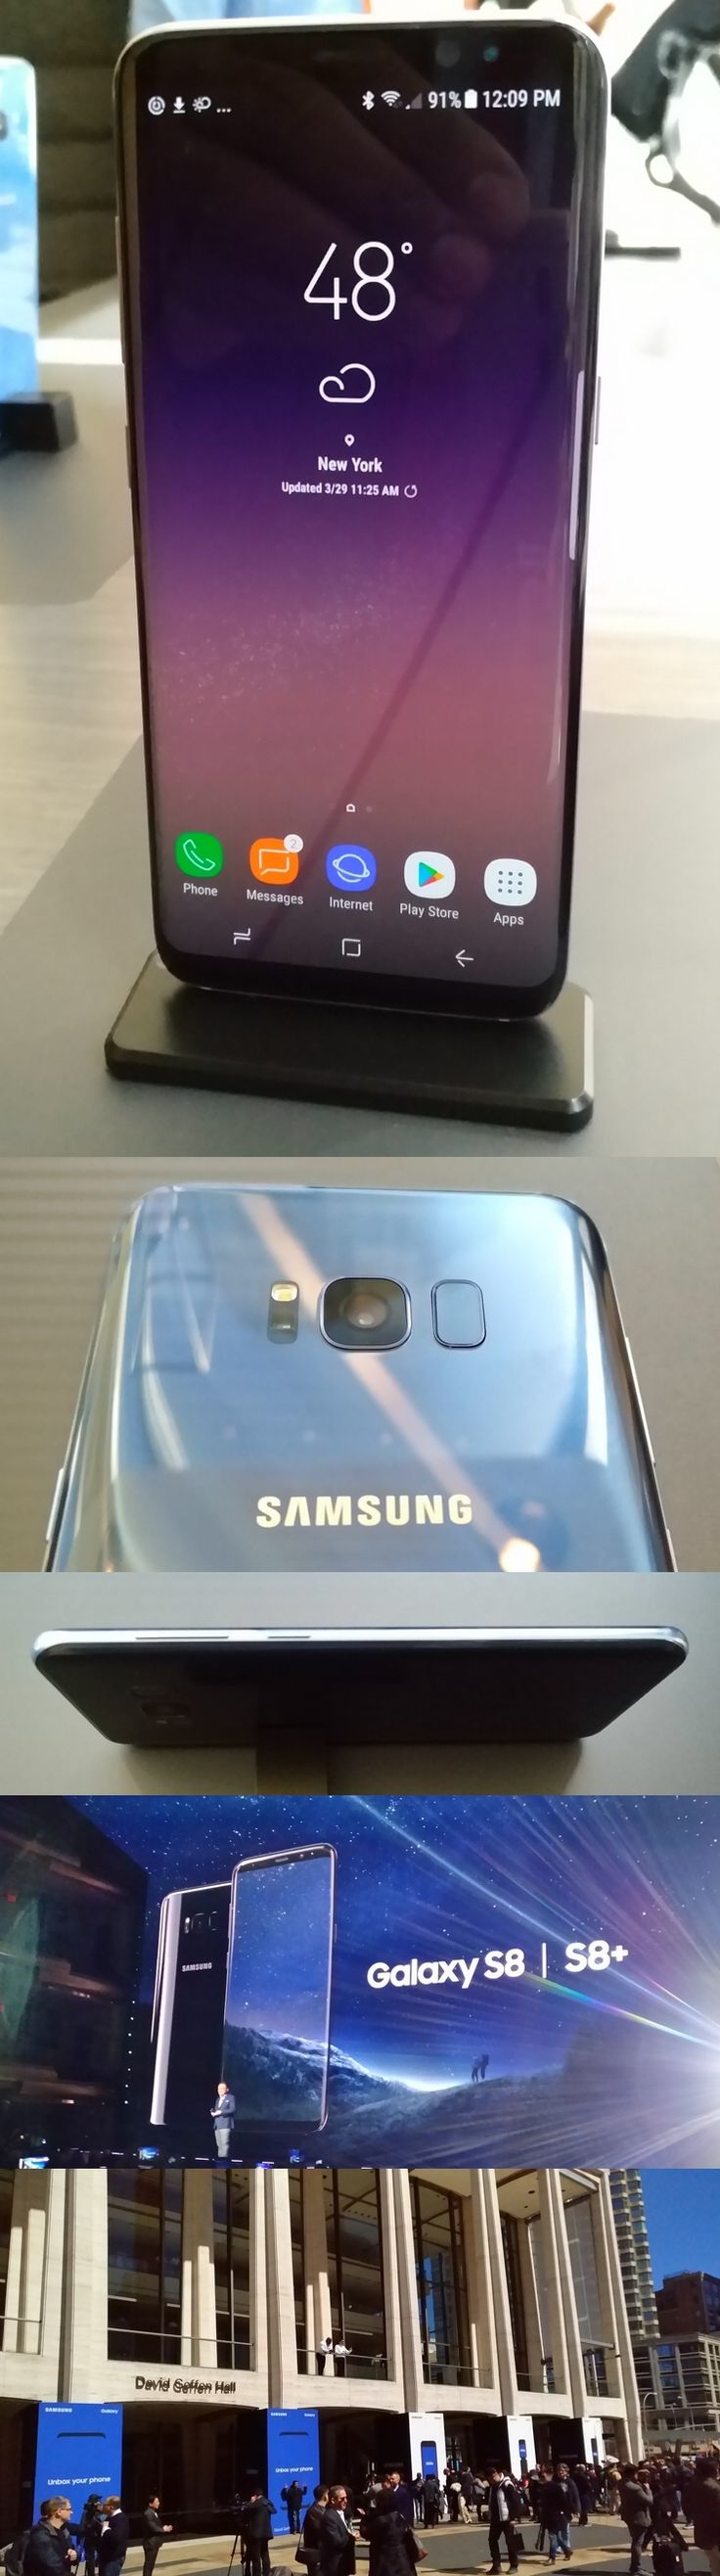 """The new @SamsungMobileUS Galaxy S8 and S8+ Android smartphones aim to wash away the stench of last year's ill-fated Note 7 with nifty features like thin profiles, curved """"infinity screens,"""" IP68 waterproof bodies and, of course, heavily tested batteries. Security features include fingerprint readers, iris and facial recognition and Samsung Knox software. The micro USB connector is out, the newer USB-C port is in, but surprise: The phones retain headphone jacks. Available April 21…"""